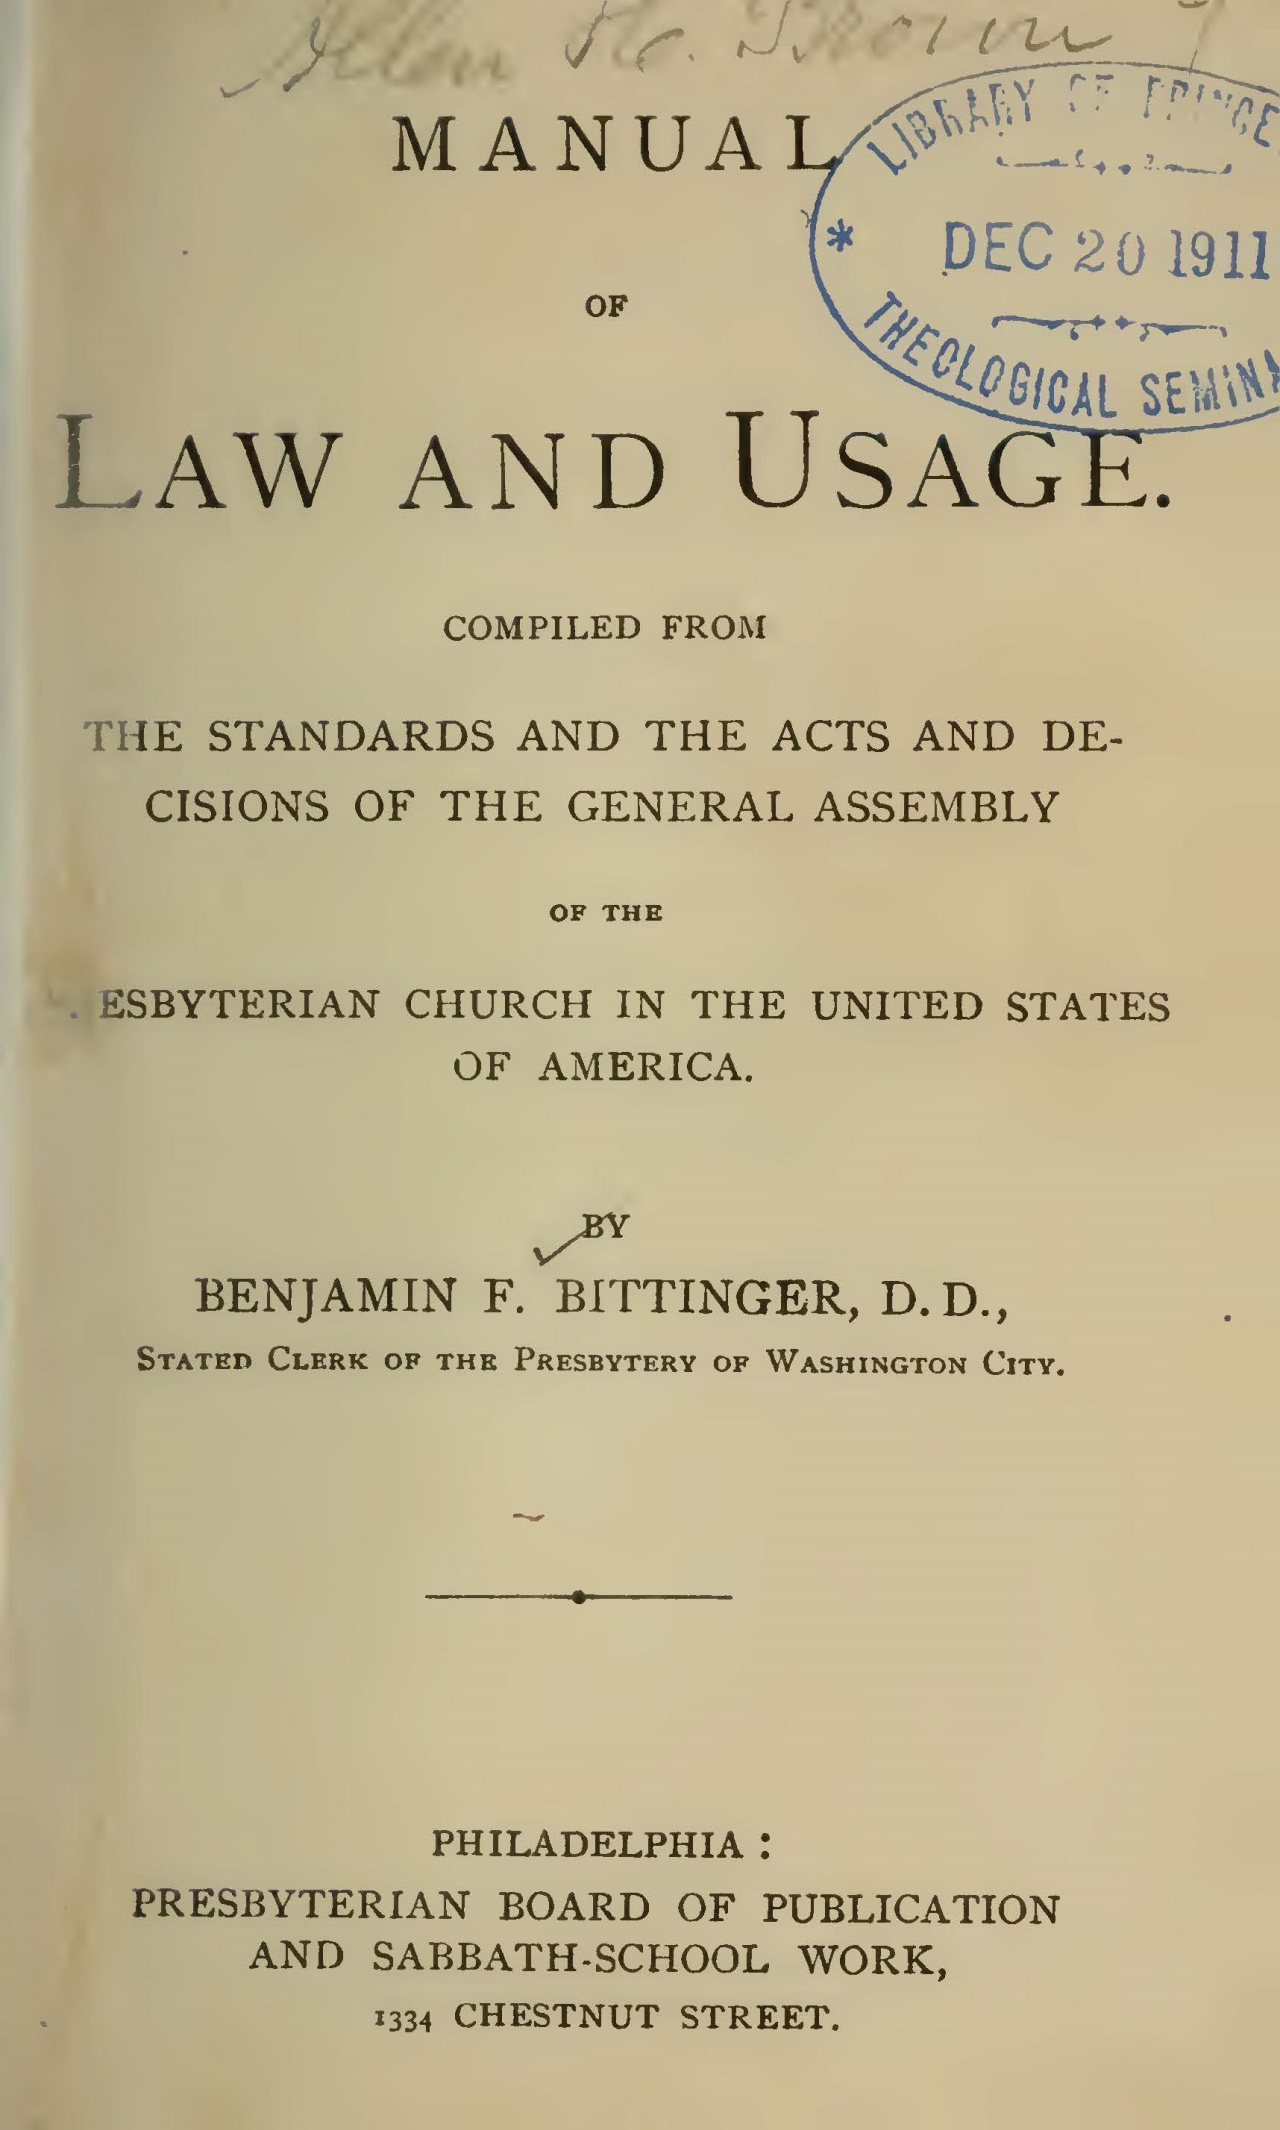 Bittinger, Benjamin Franklin, Manual of Law and Usage 1888 ed. Title Page.jpg